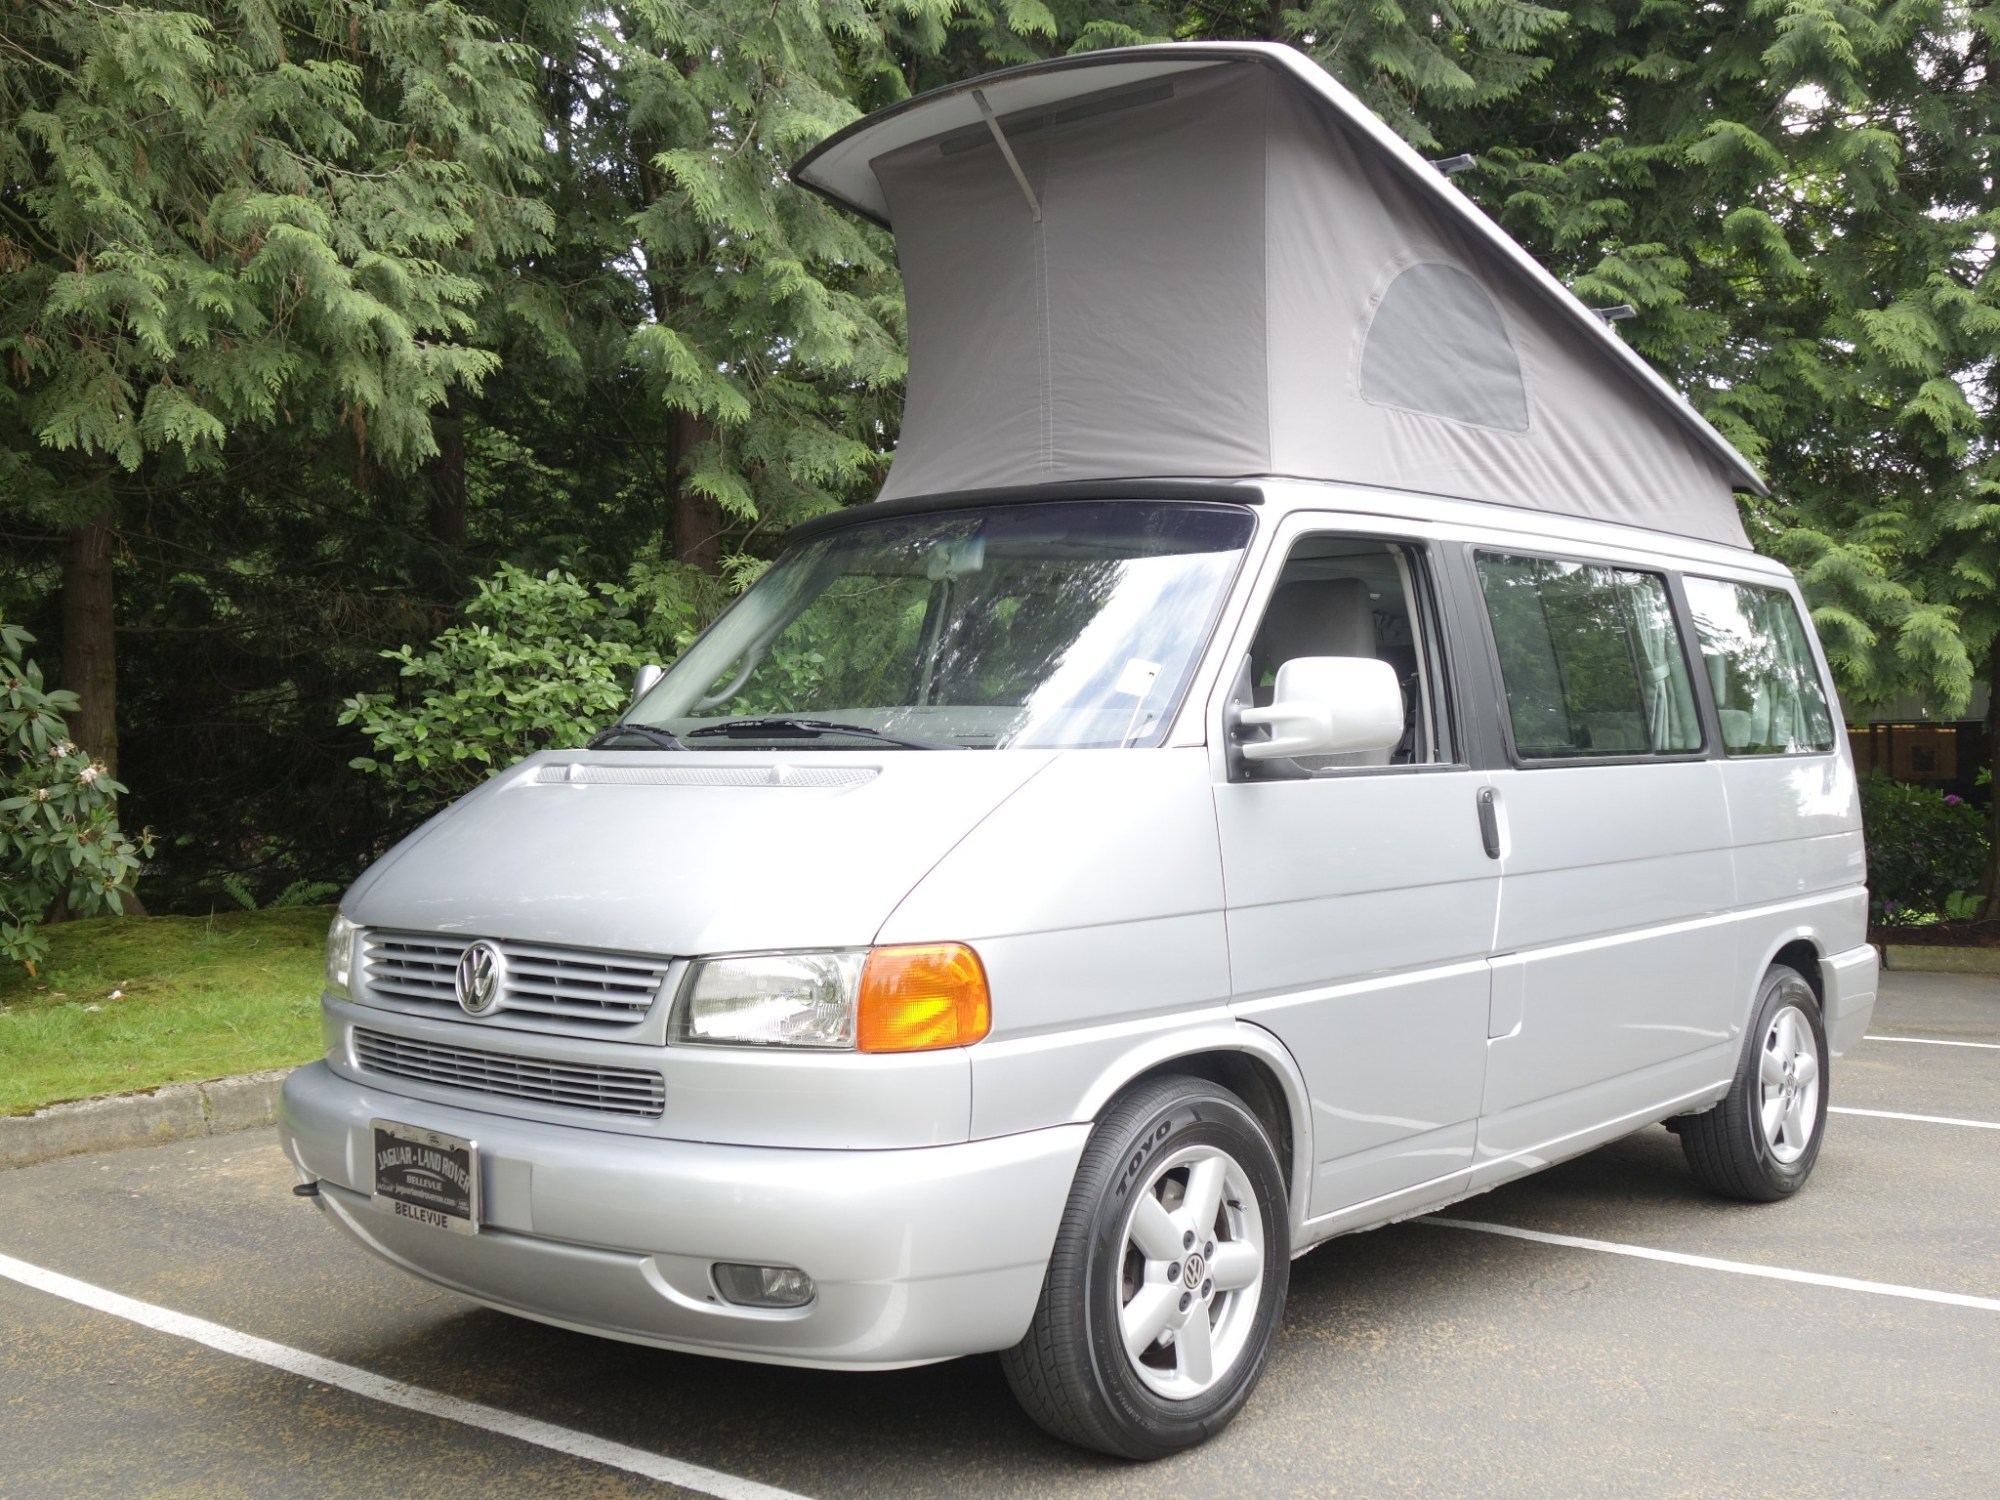 hight resolution of 2003 volkswagen eurovan mv weekender for sale on bat auctions sold for 20 500 on may 31 2018 lot 9 984 bring a trailer